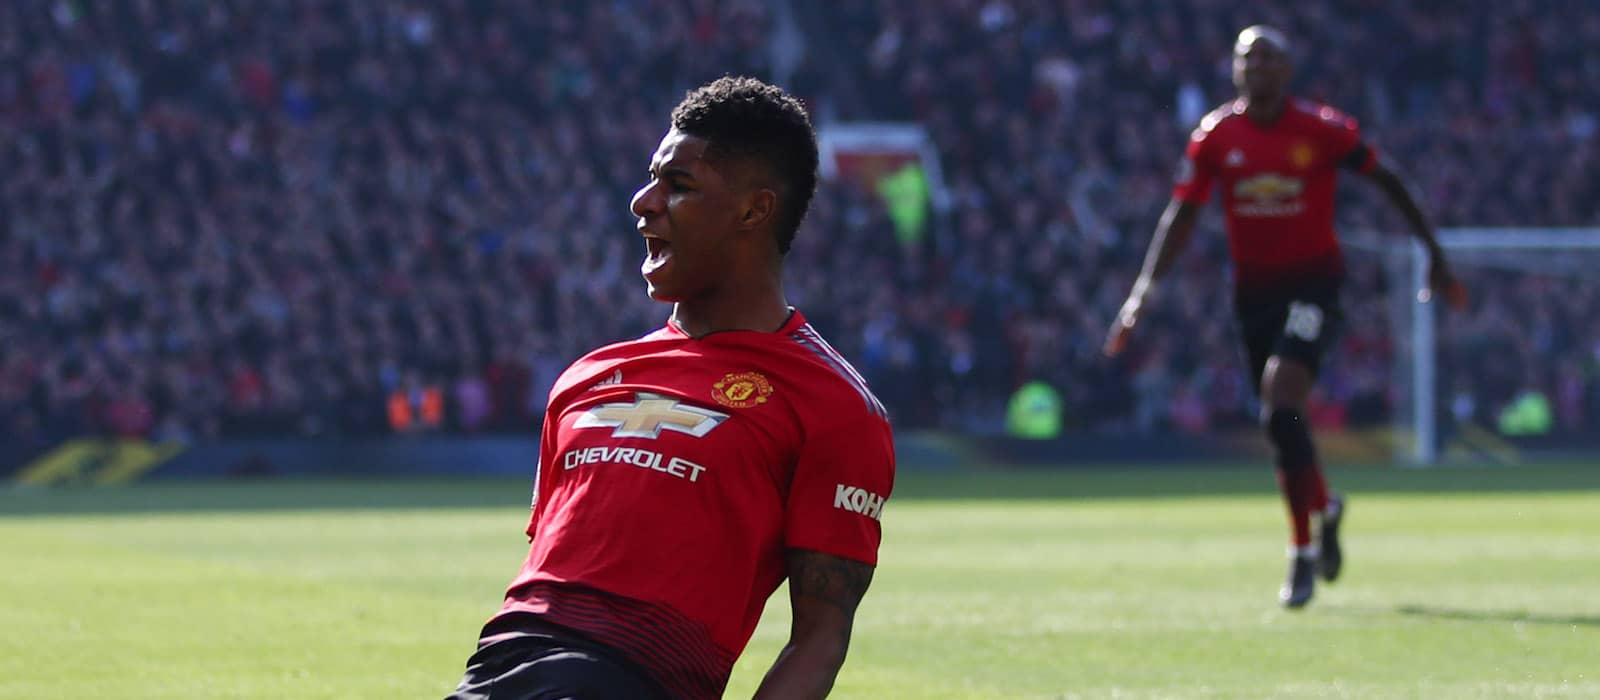 Marcus Rashford explains crucial moment vs PSG in the Champions League